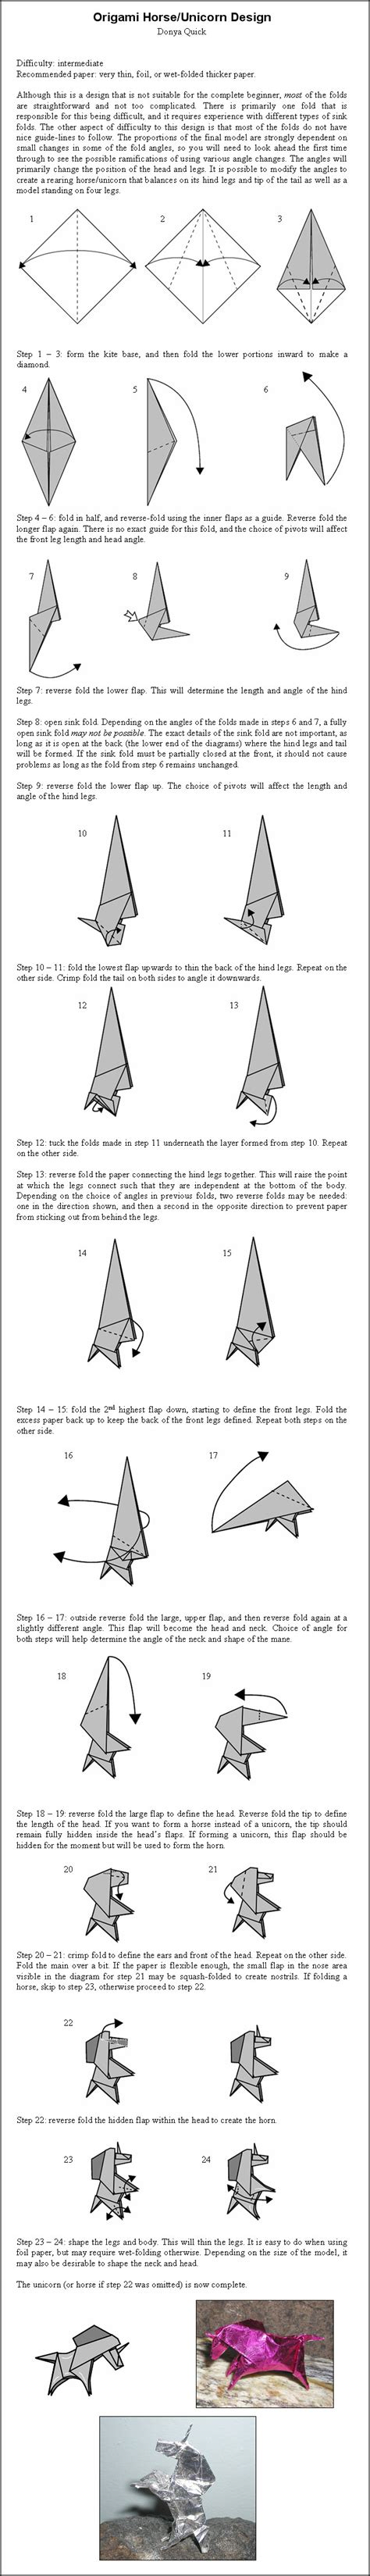 How To Make Paper Unicorn - origami unicorn by donyaquick on deviantart